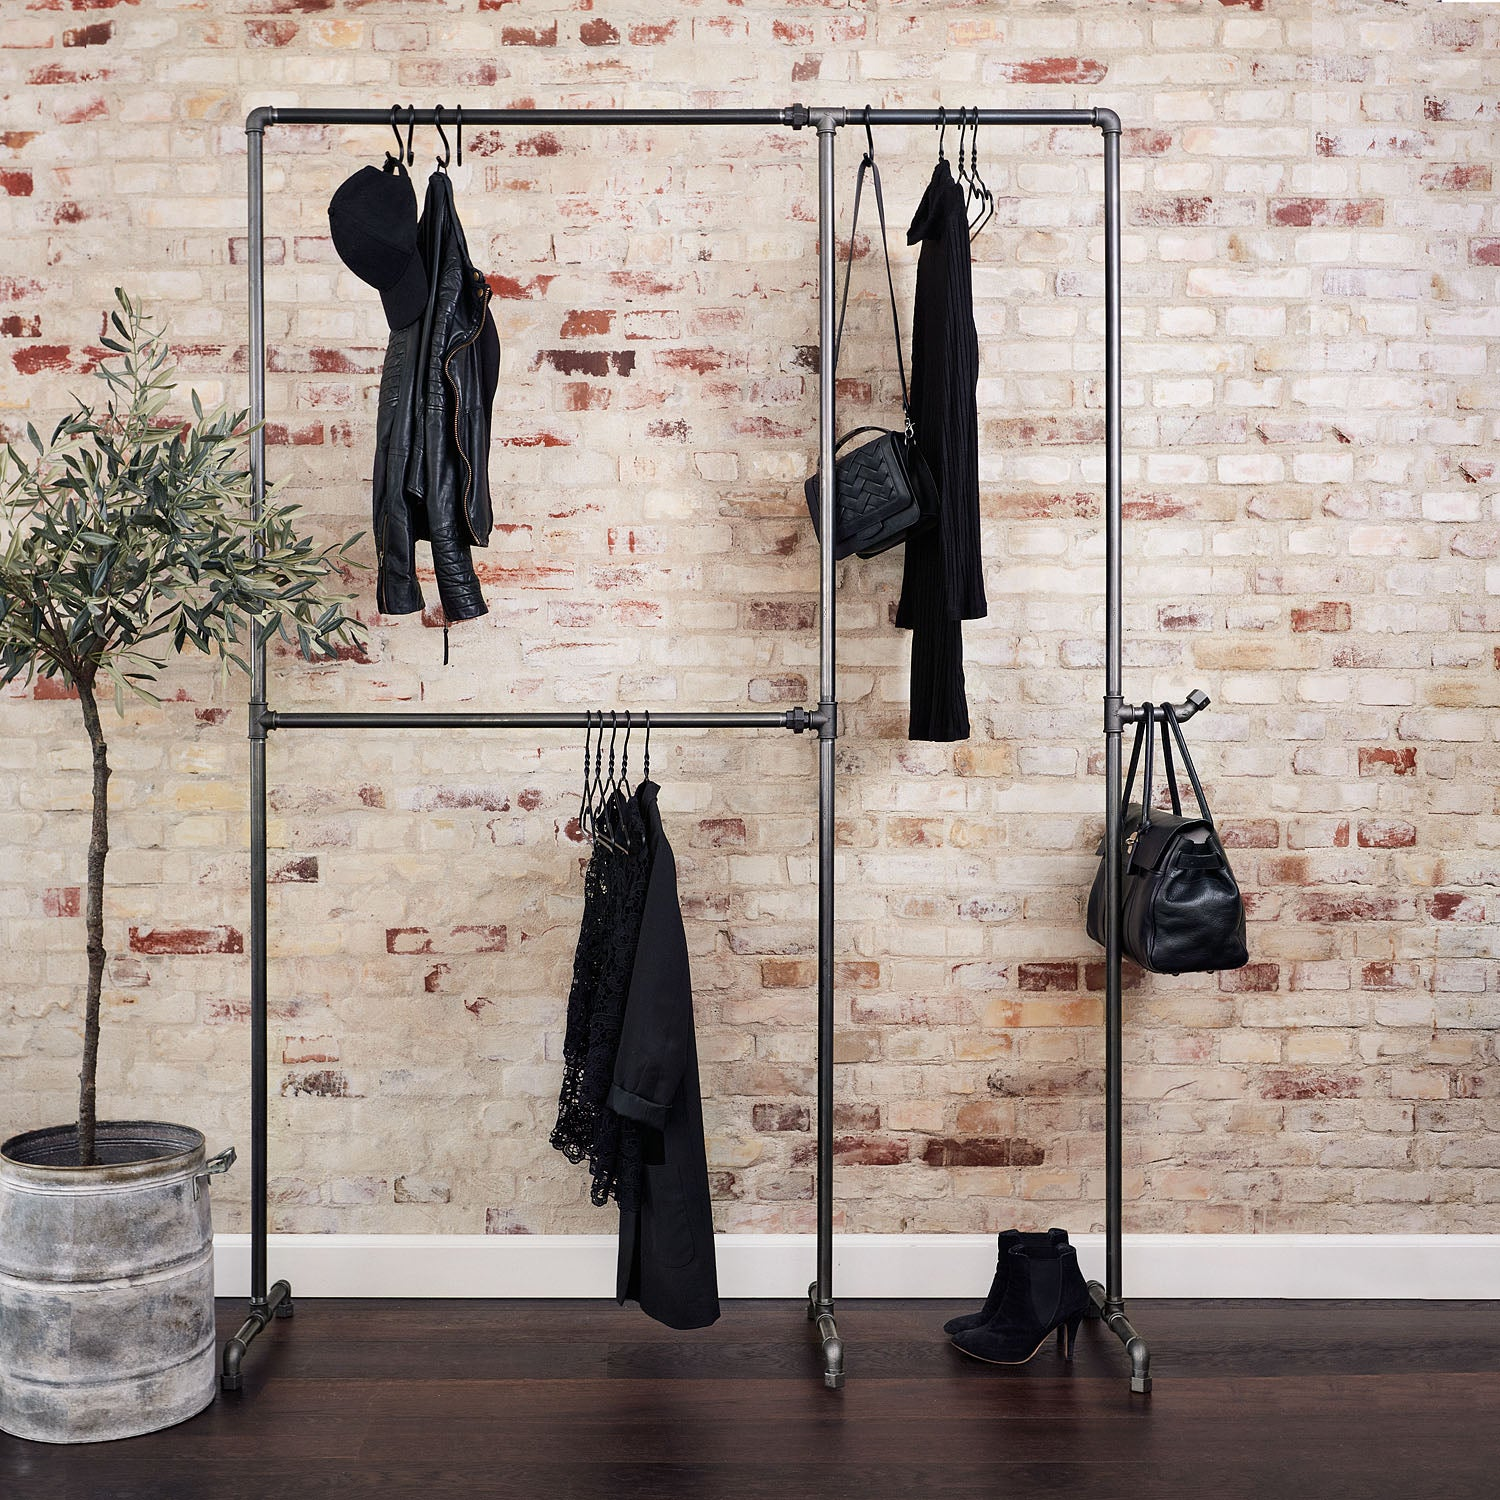 RackBuddy Wild Bill Elliot – Clothes rack with rail for dresses and coats